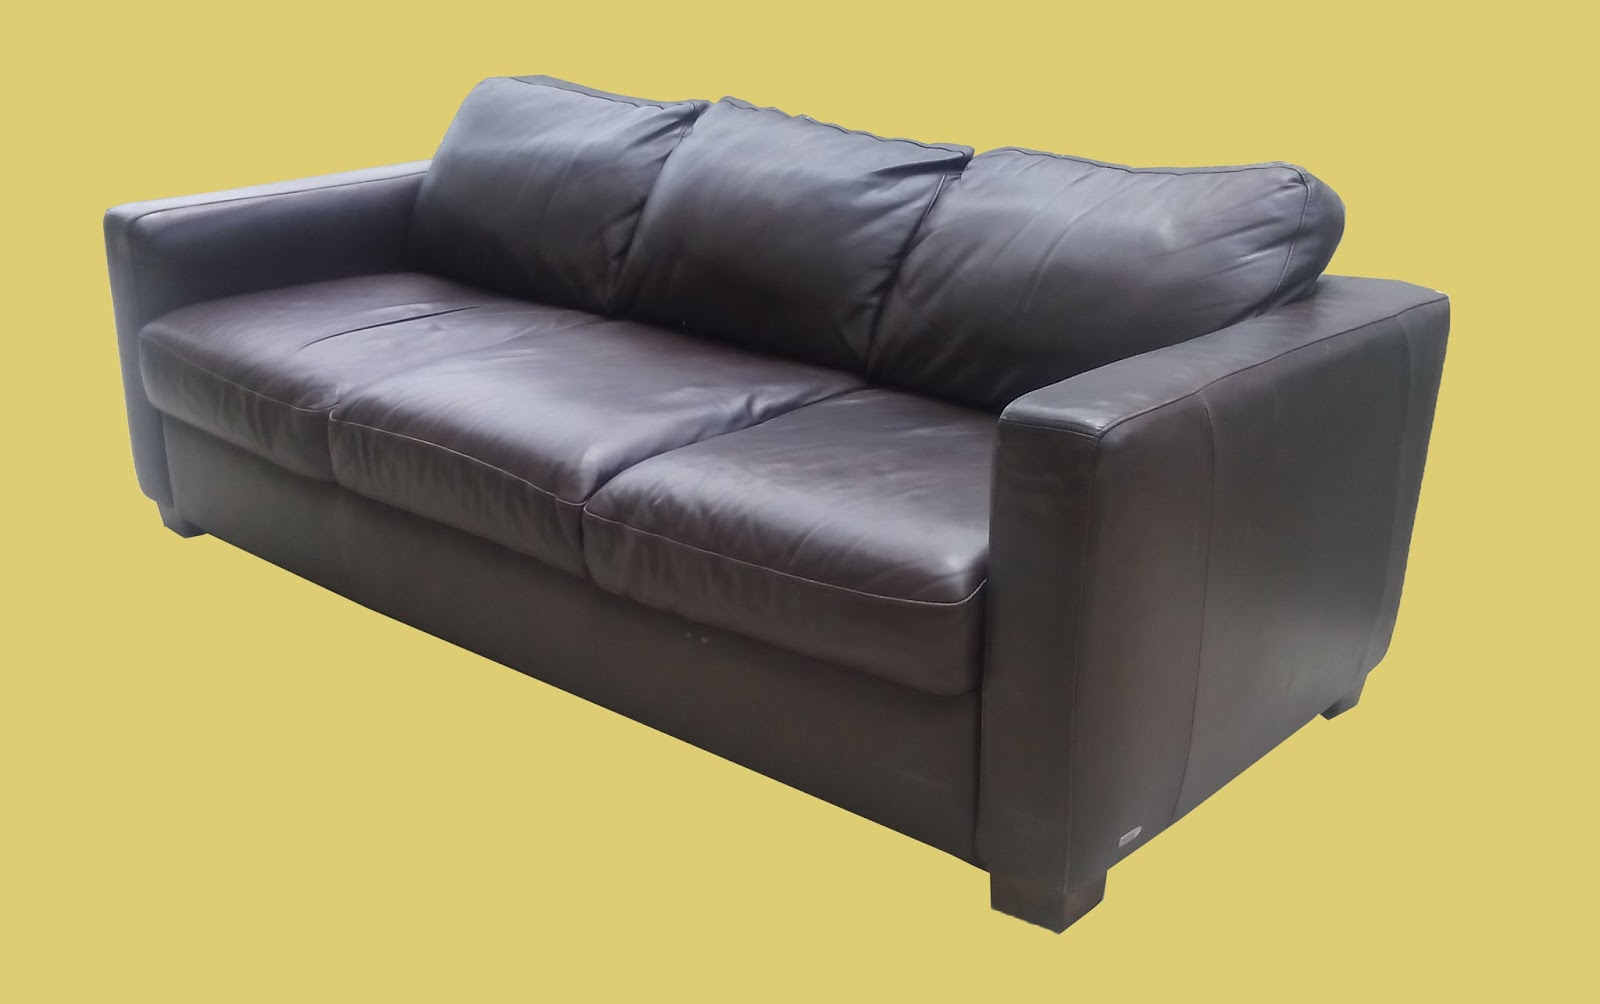 Italsofa Loveseat Retro Sofa Glider Cushions Uhuru Furniture And Collectibles Leather By